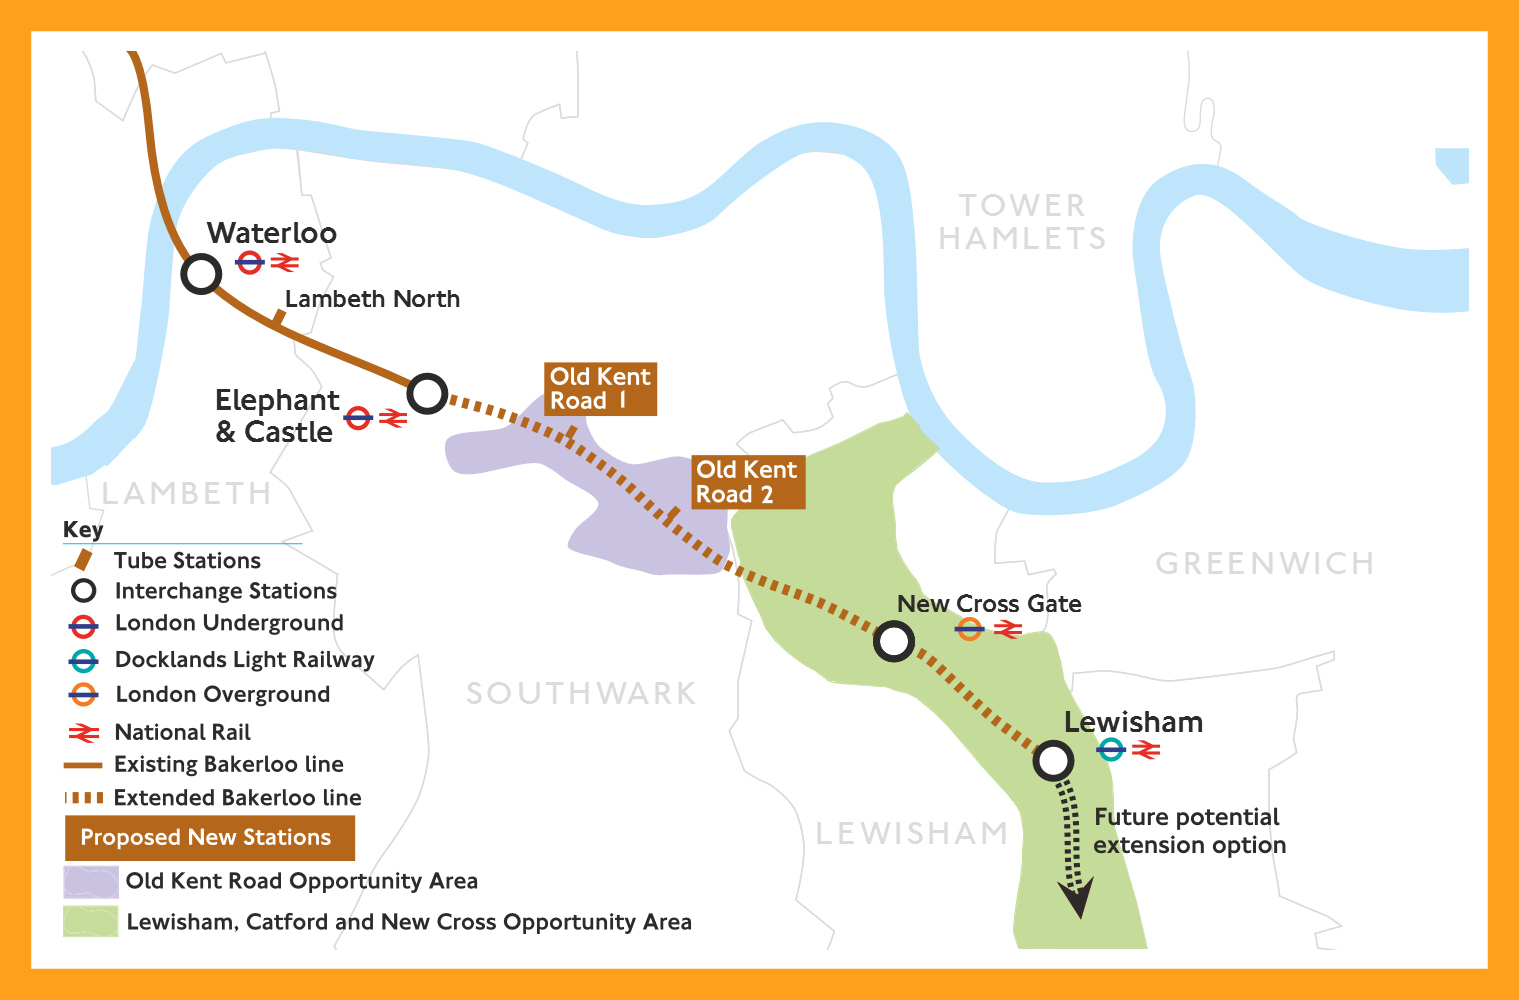 Back the Bakerloo extension - but make it work for Lewisham